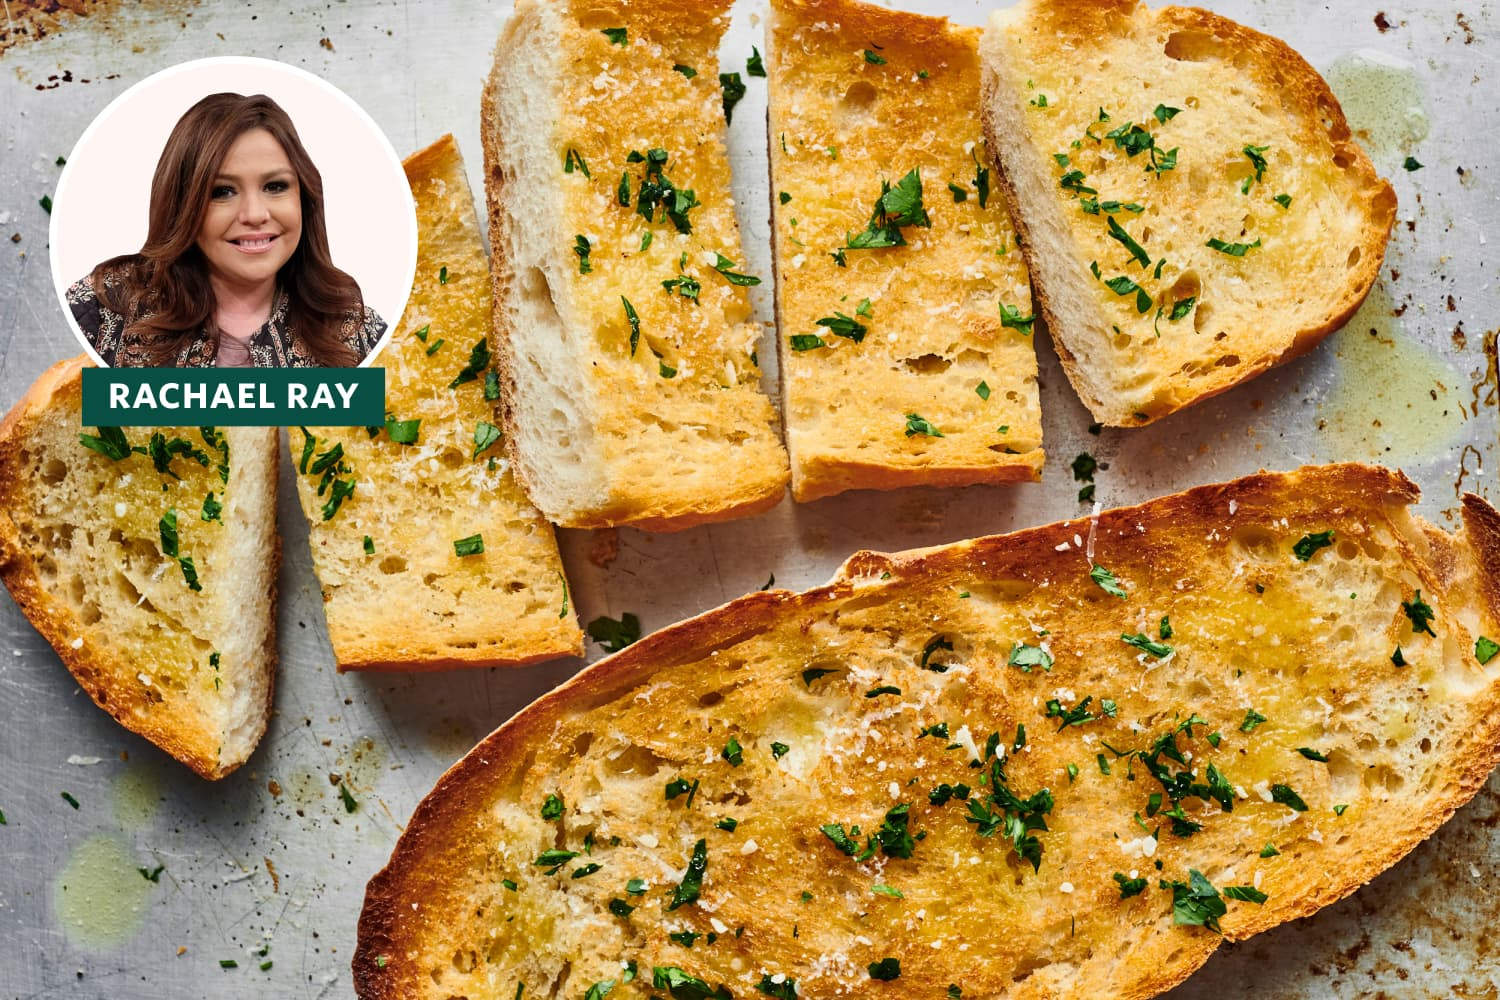 Rachael Ray's Garlic Bread Is as Easy as It Gets. But Is It Too Good to Be True?